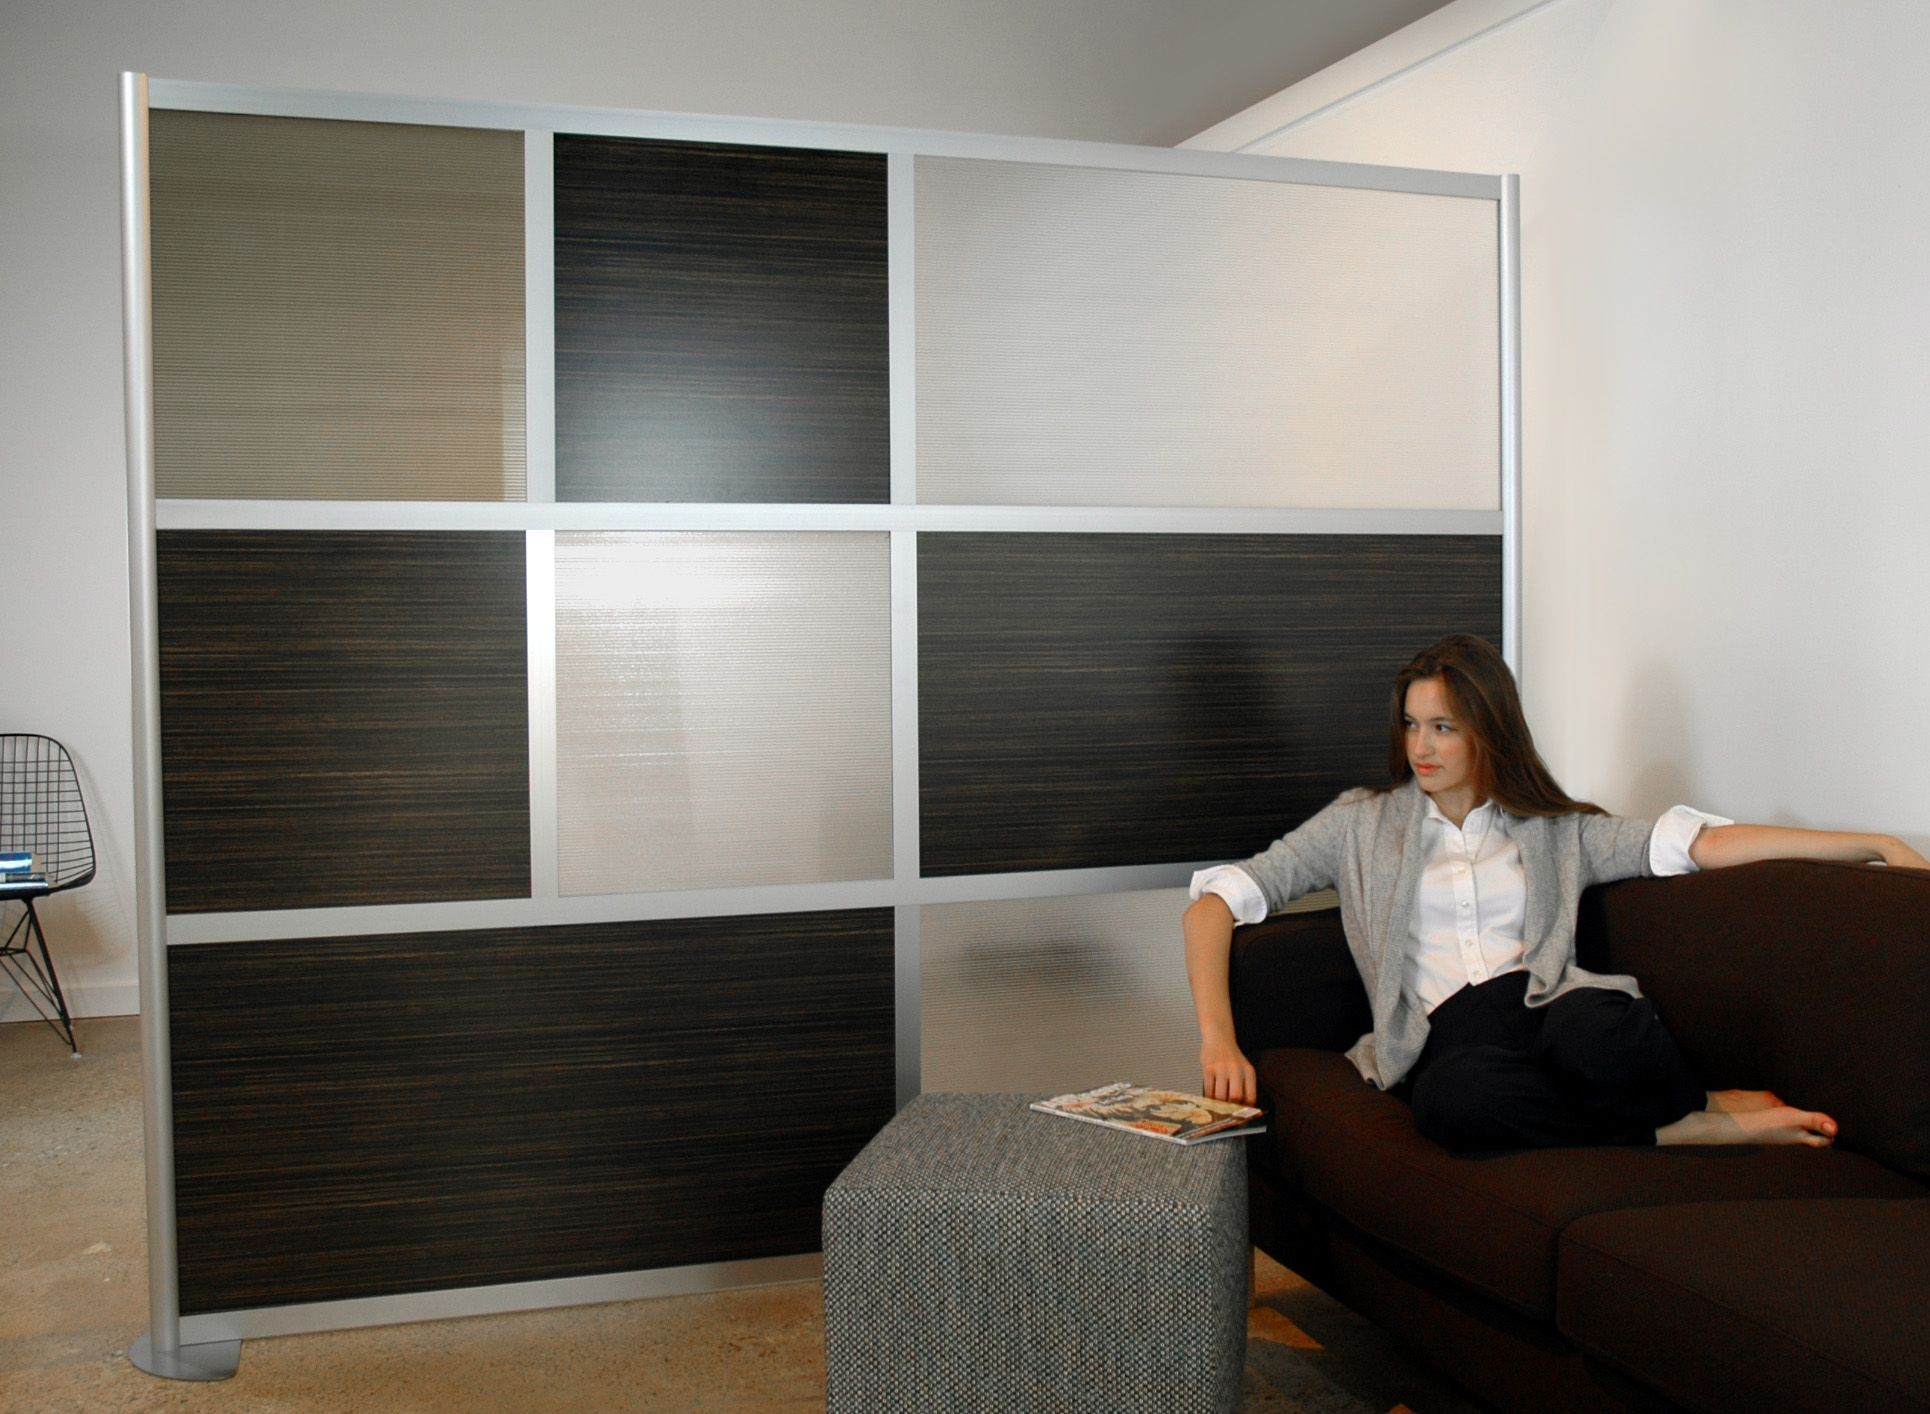 Room Divider Kast : Easy and cheap tricks room divider kast bedrooms room divider